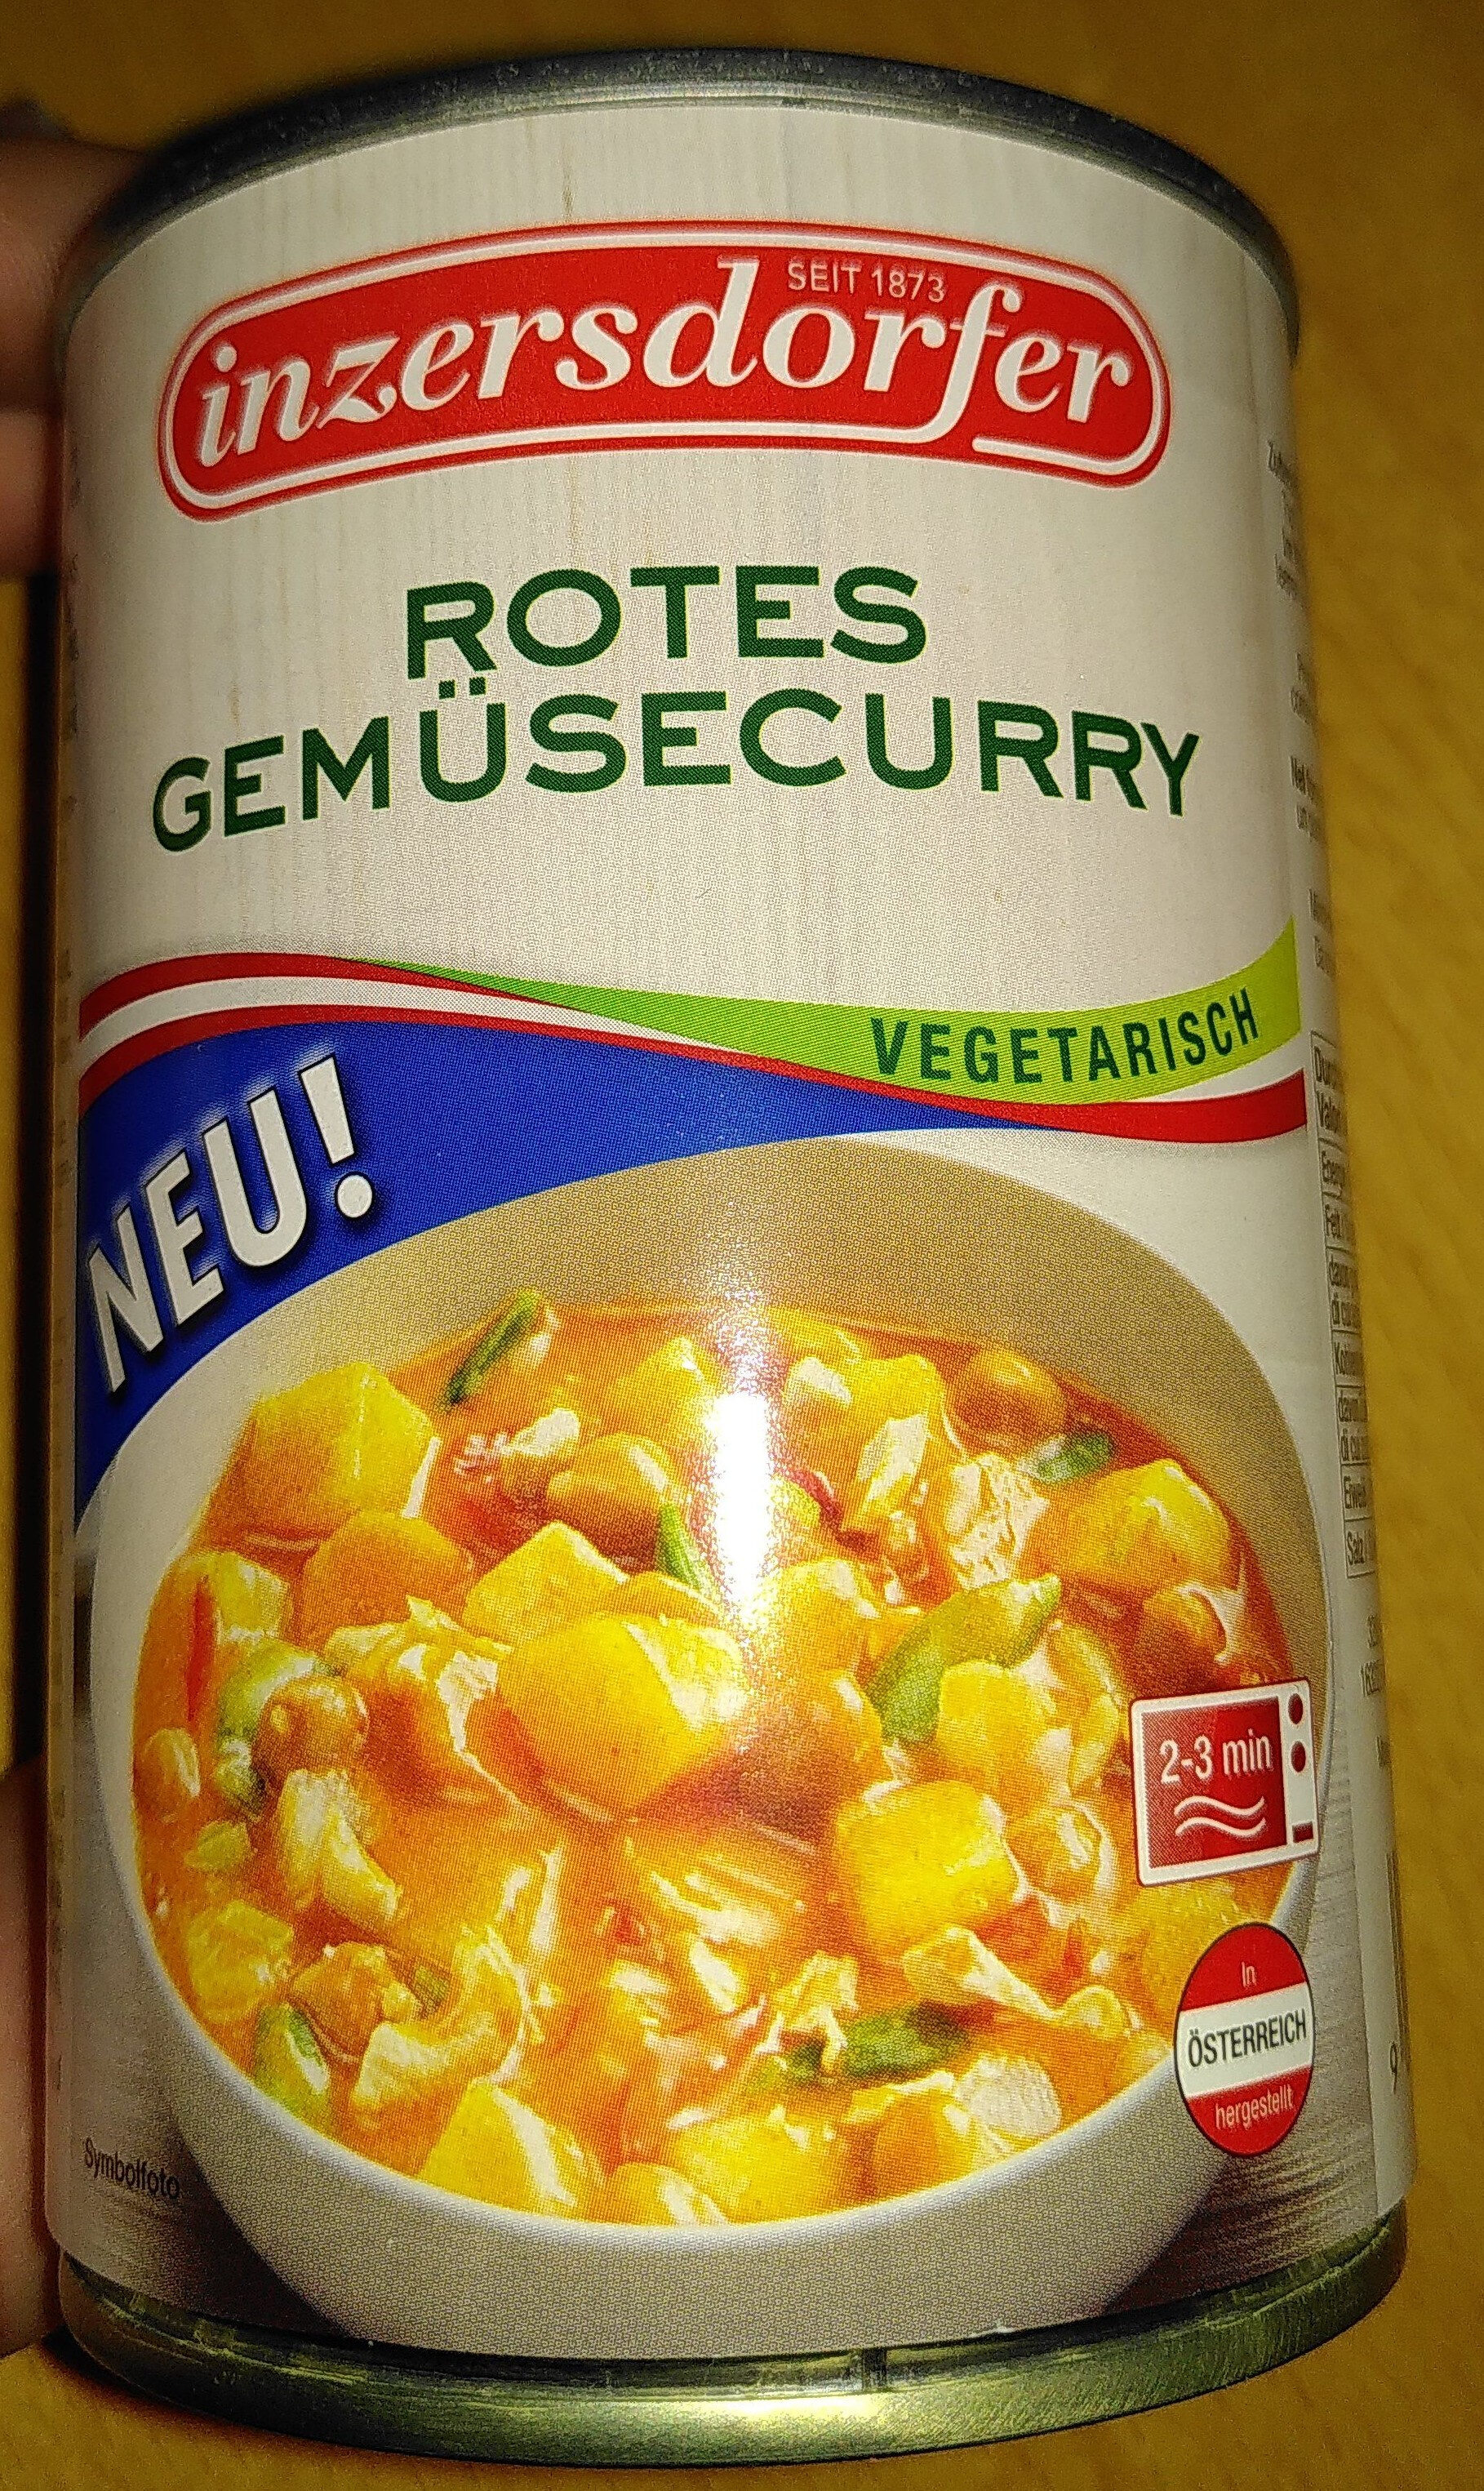 Rotes Gemüsecurry - Product - de